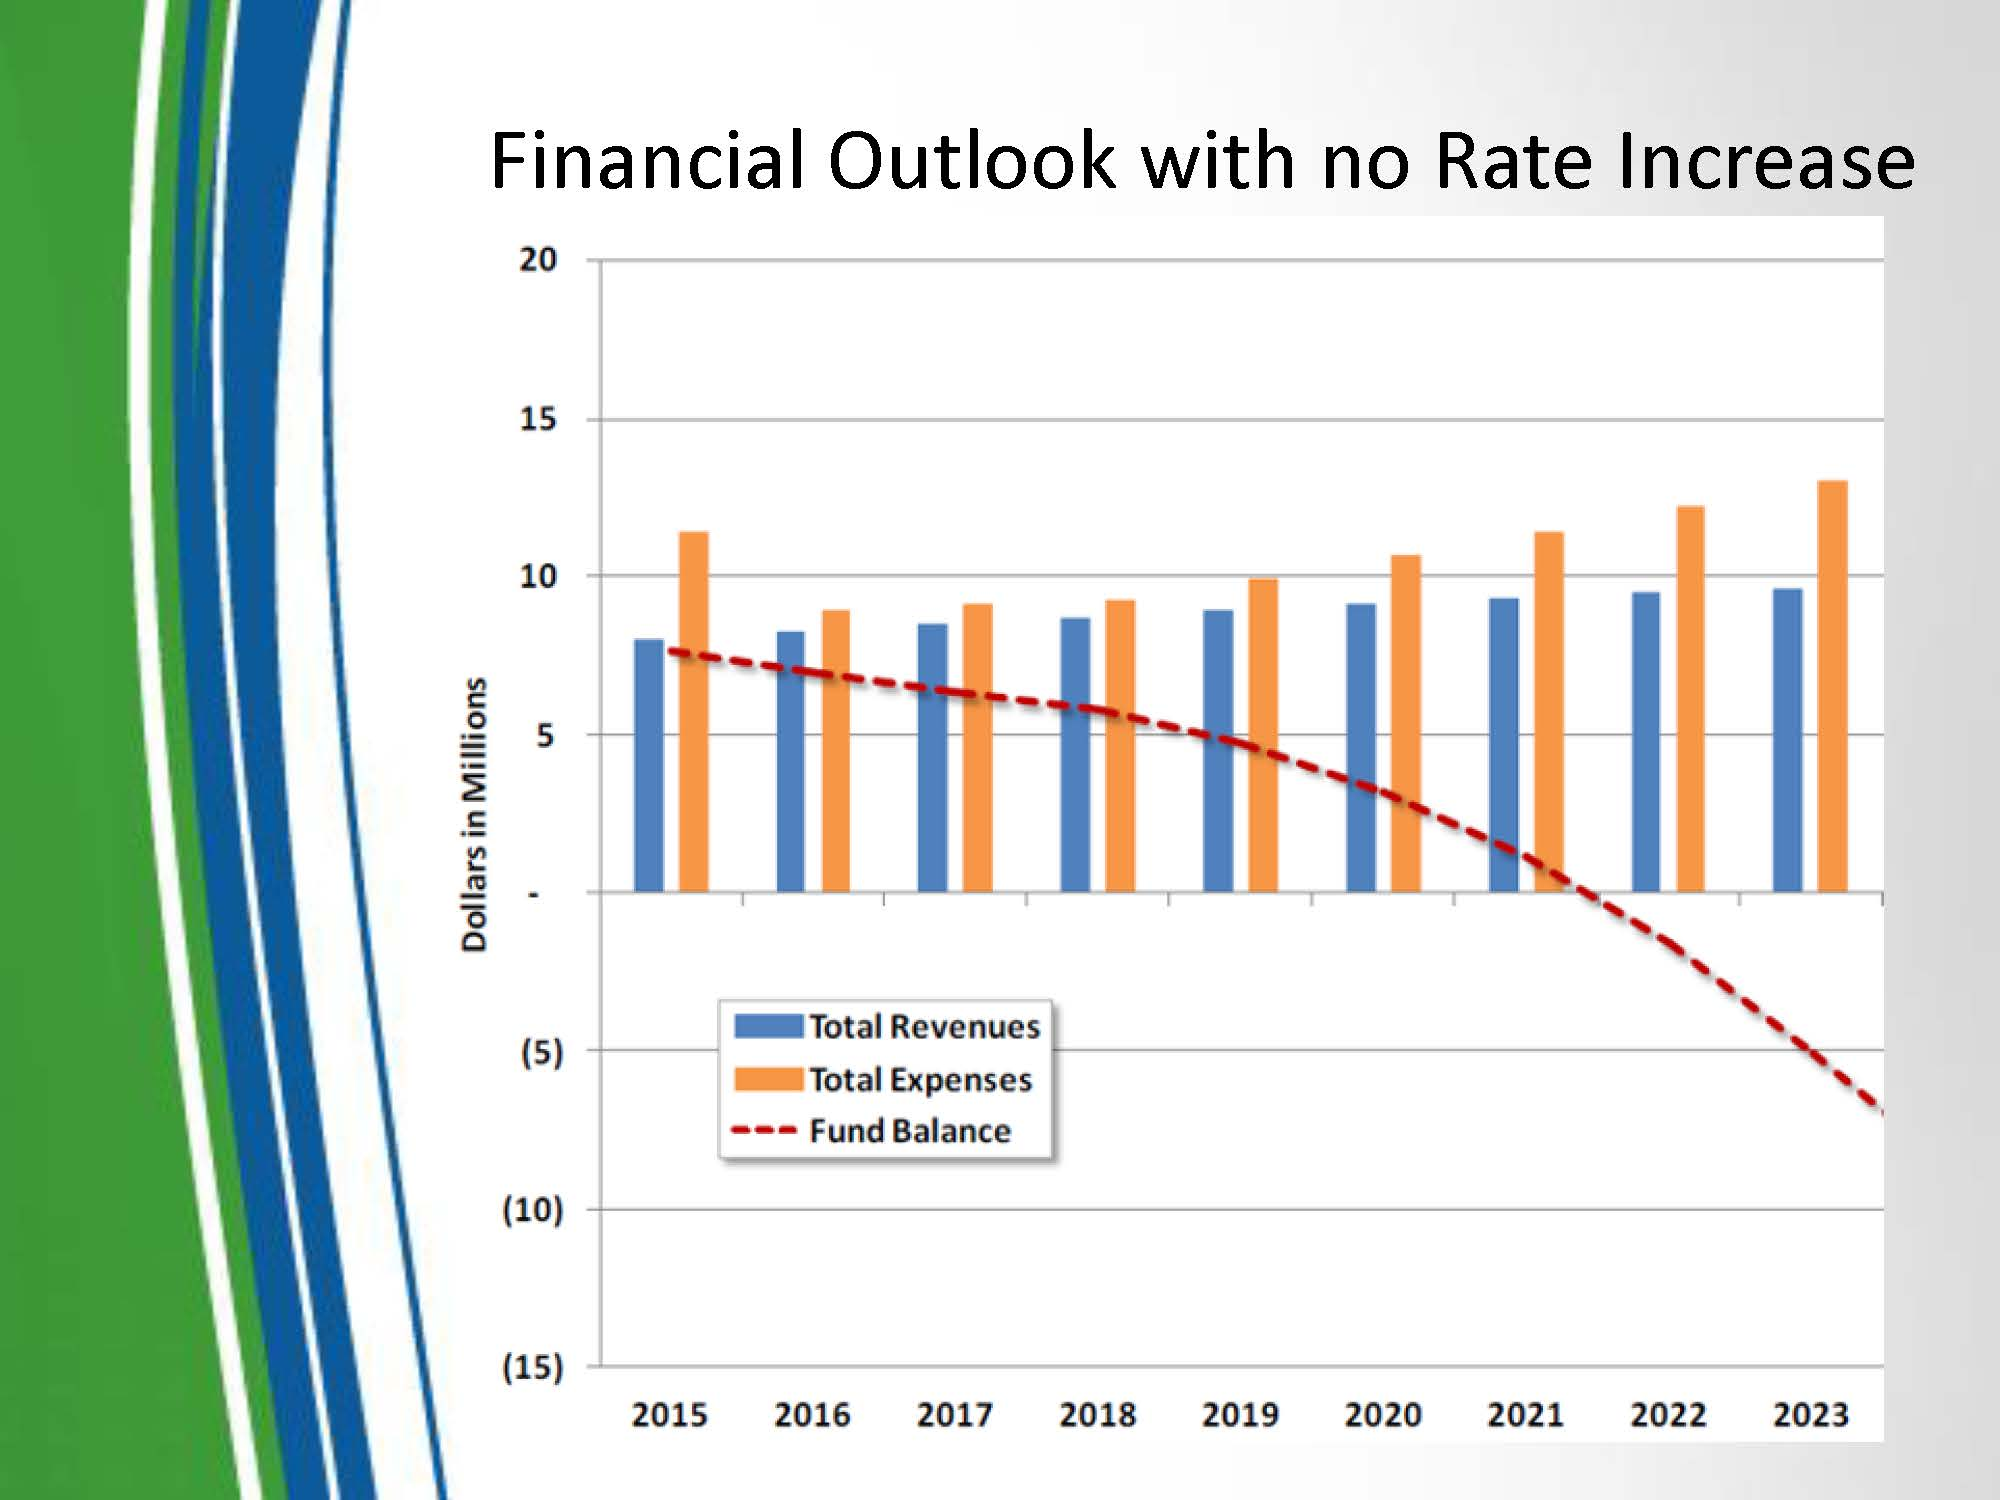 Financial Outlook with no rate increase graph